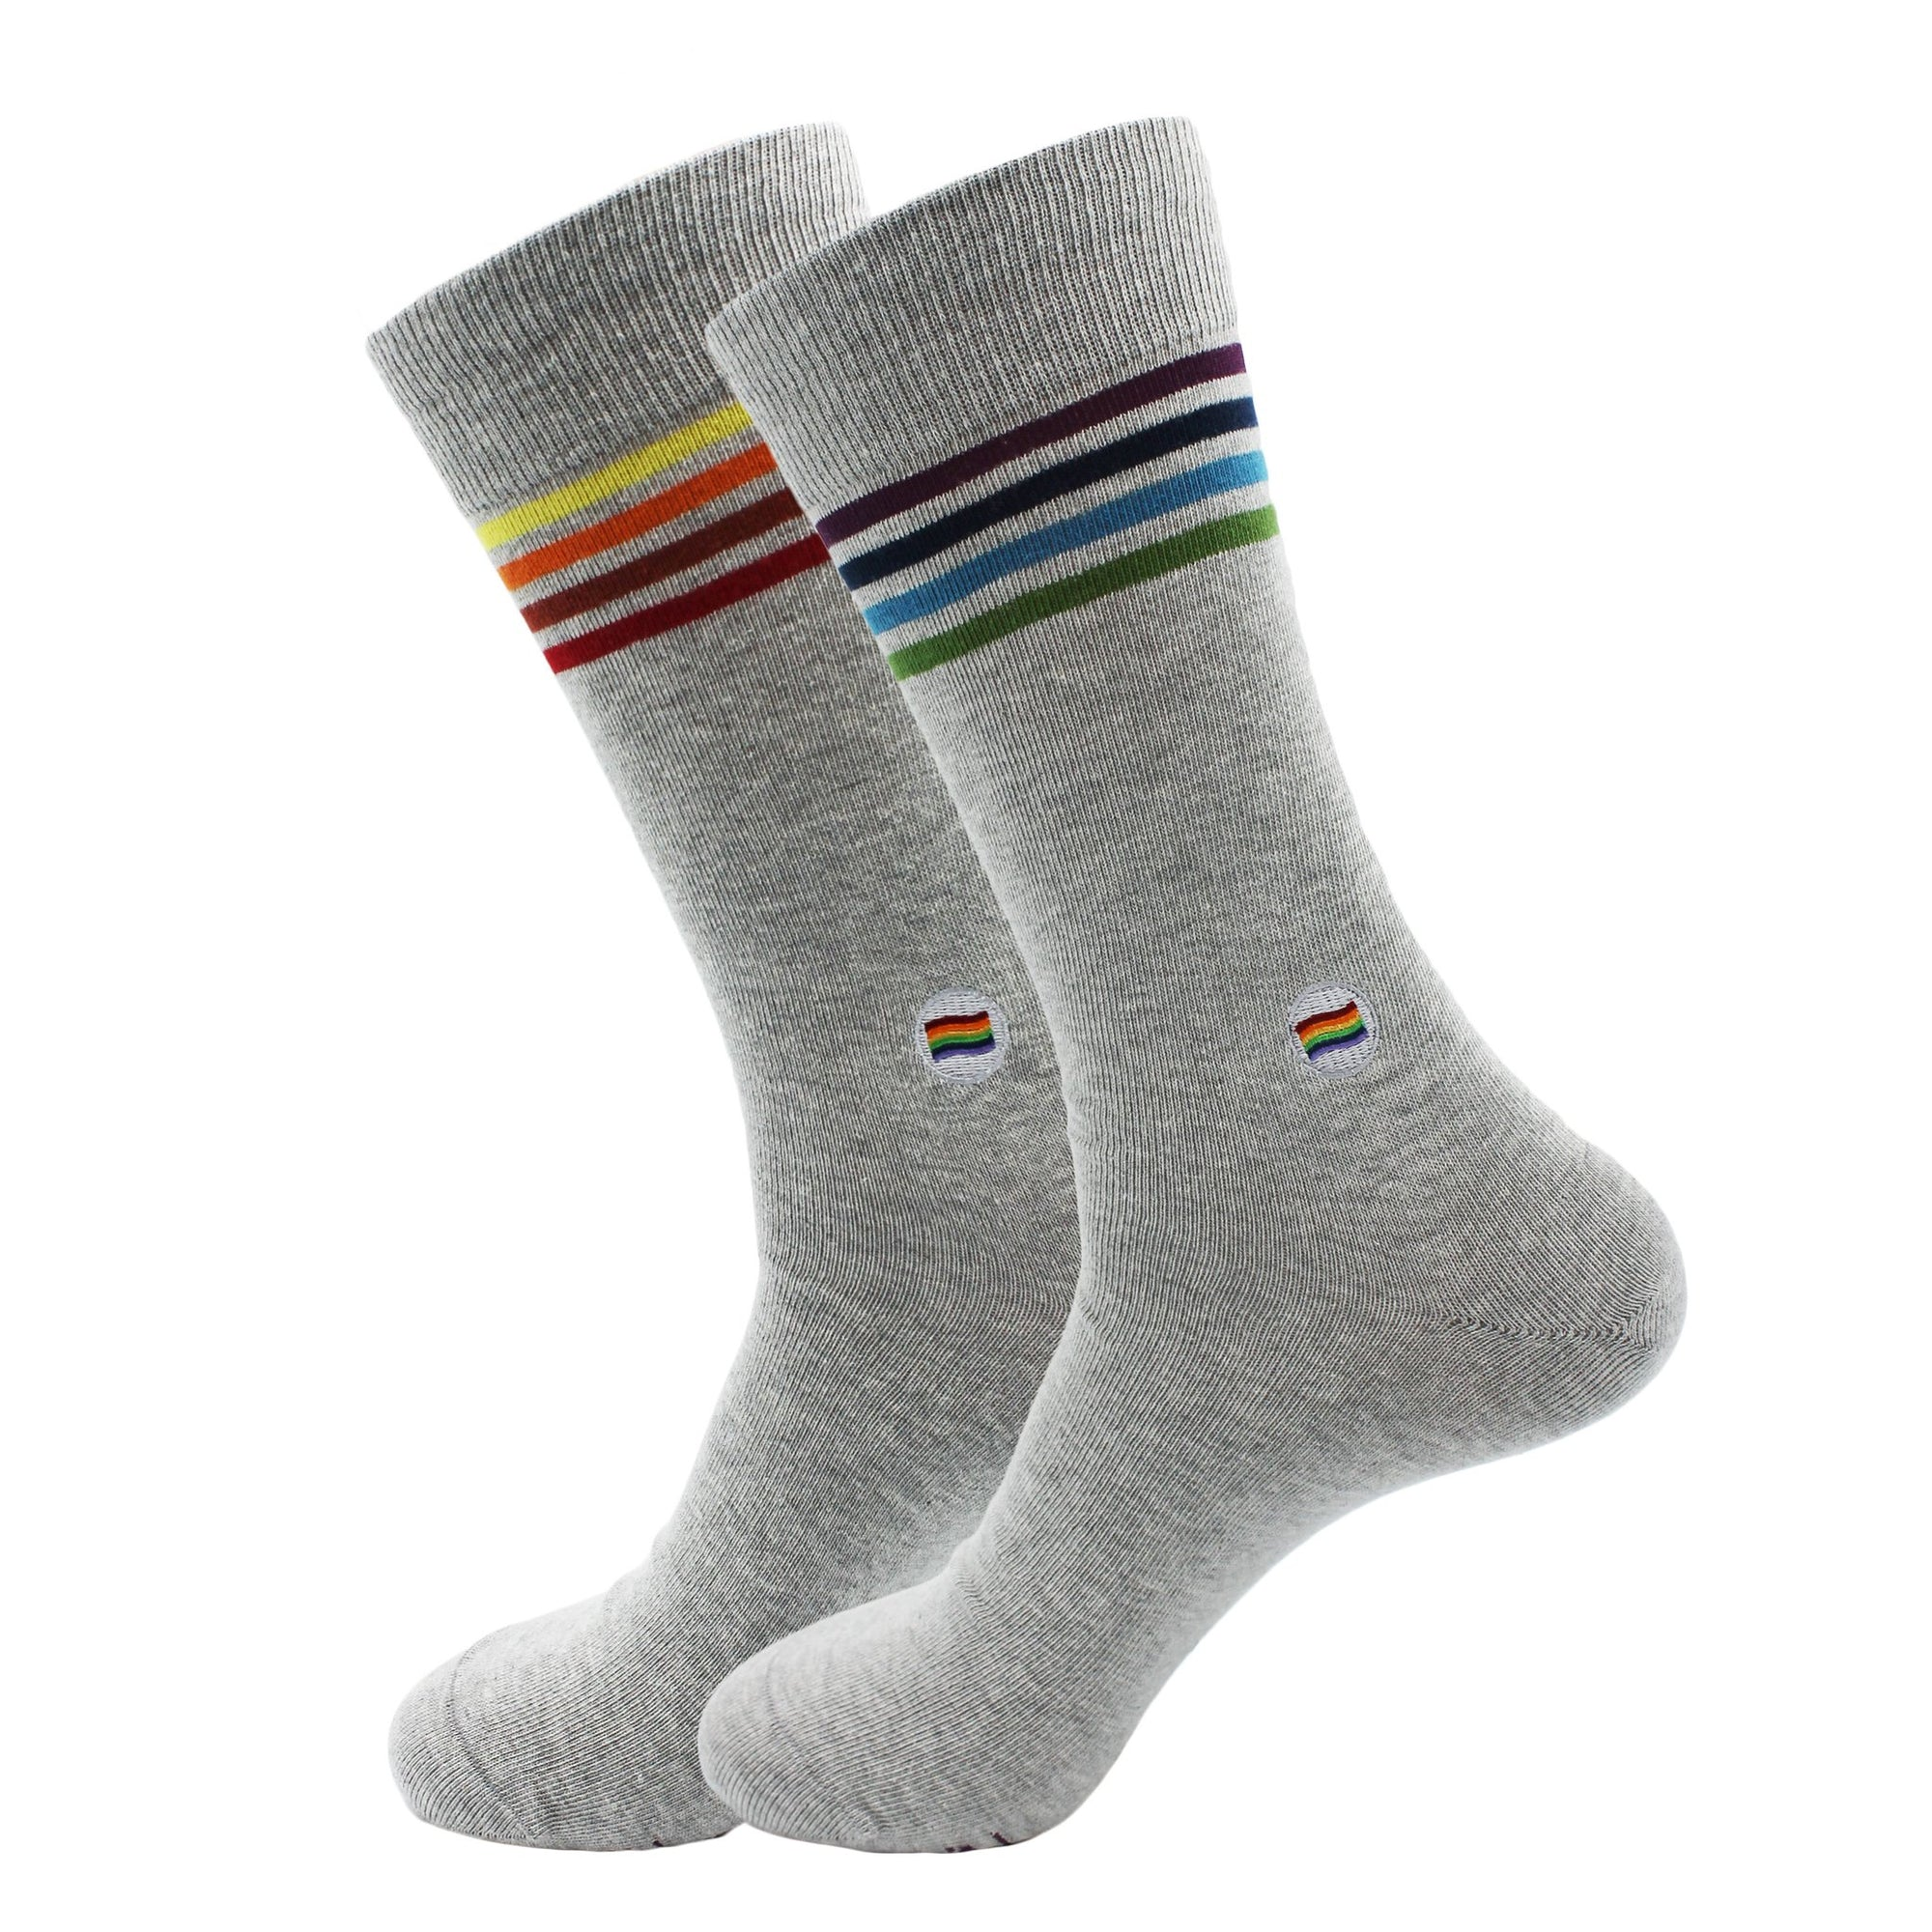 Organic Socks that Save LGBTQ Lives — Grey